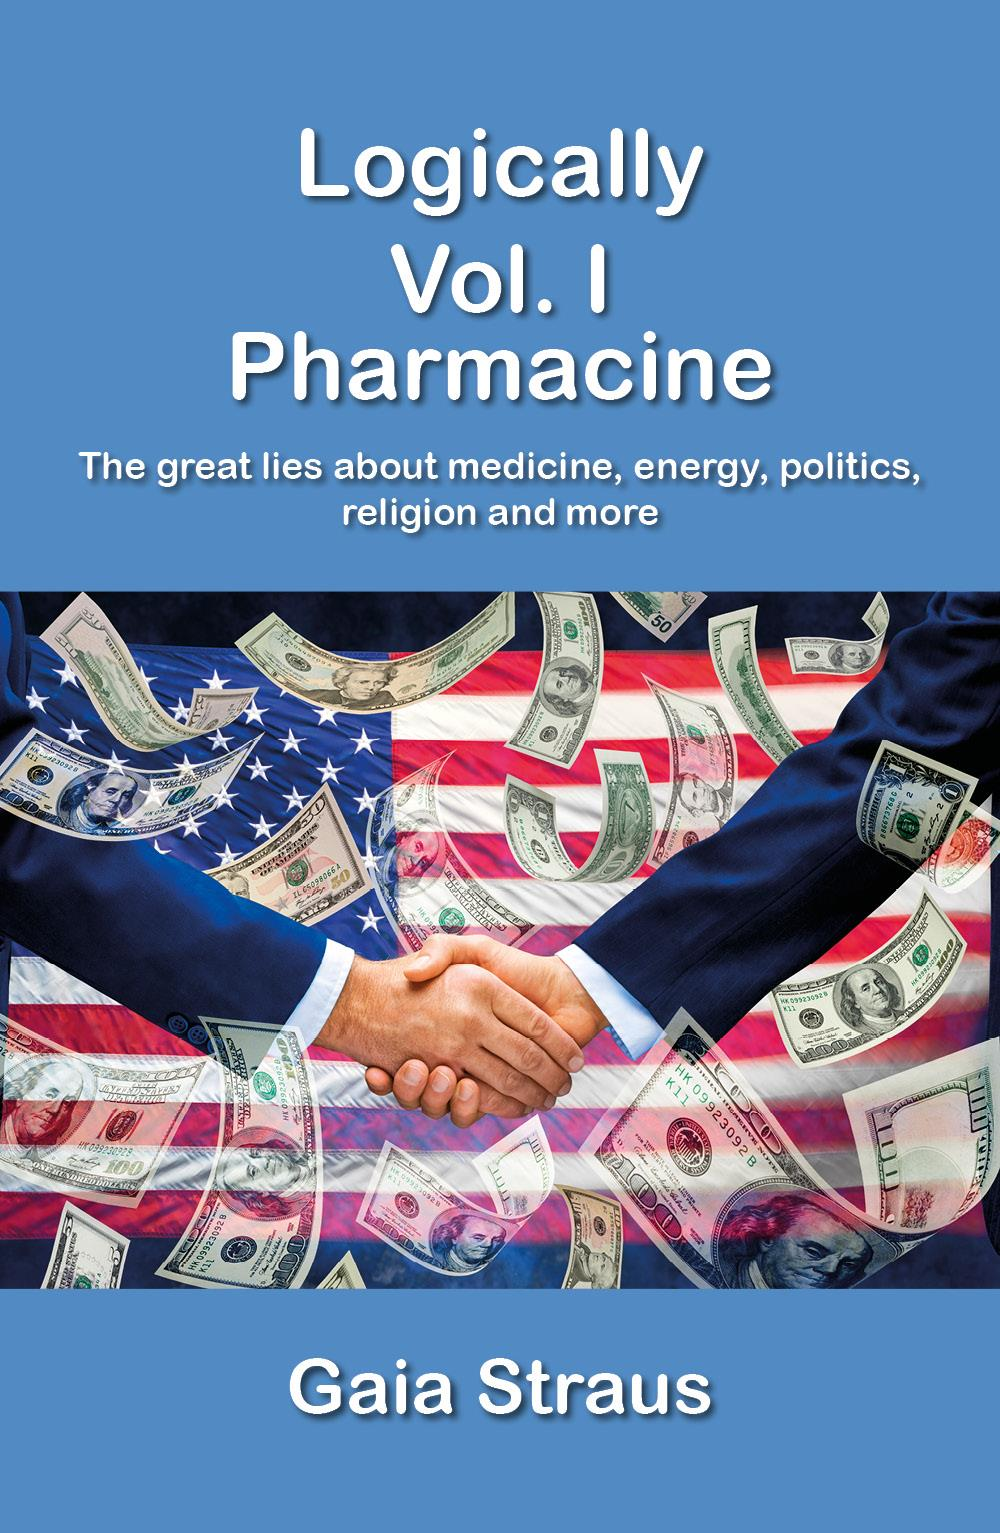 Logically  Vol. I - Pharmacine - The great lies about medicine, energy, politics, religion and more